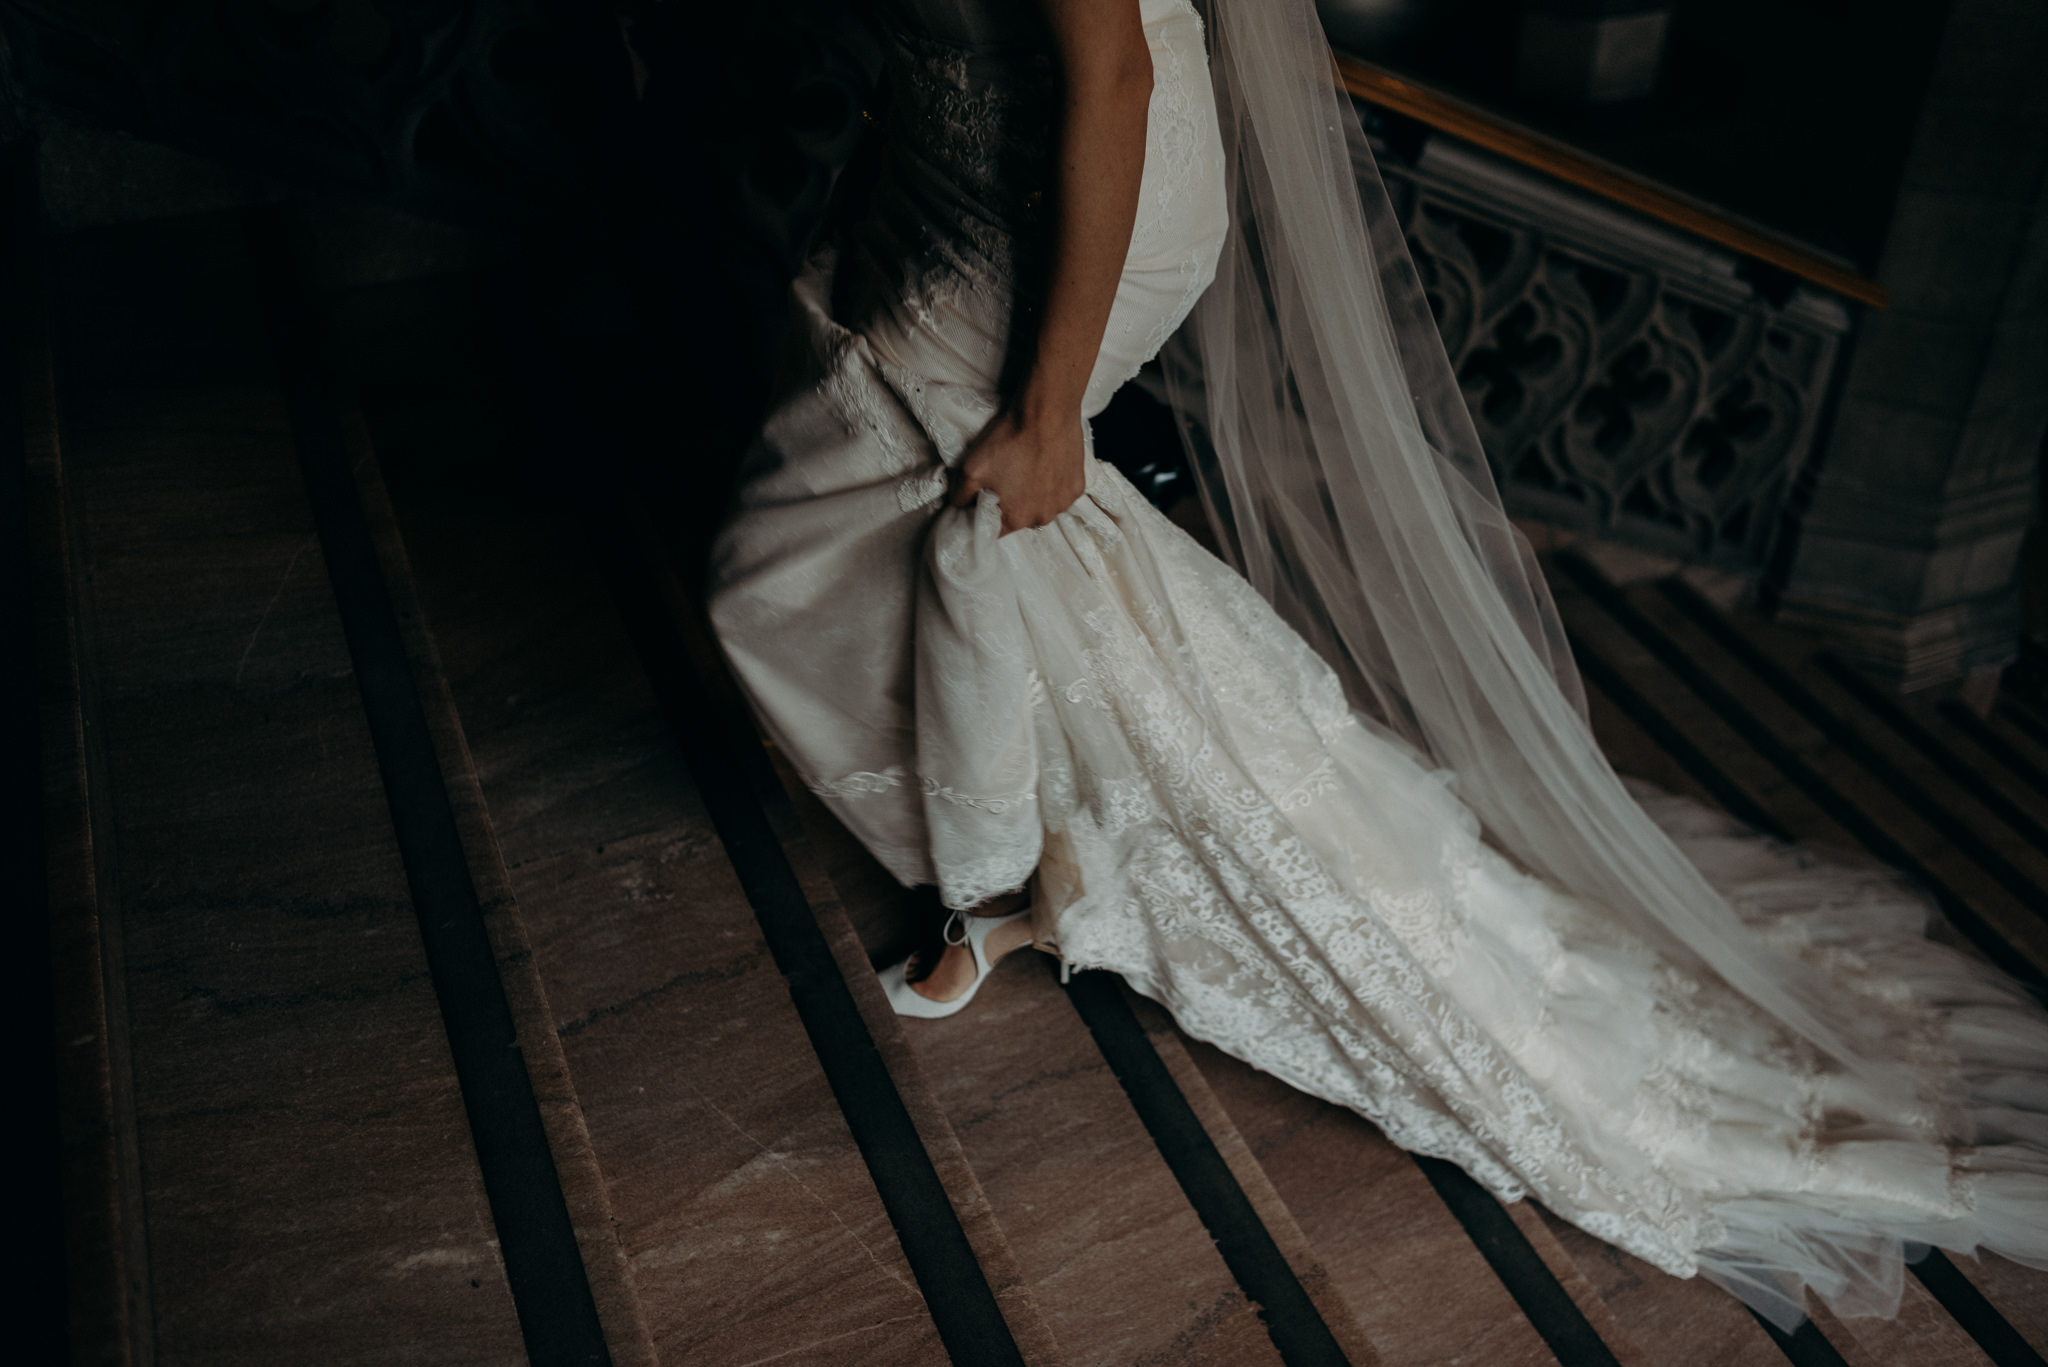 bride walking up stairs holding dress